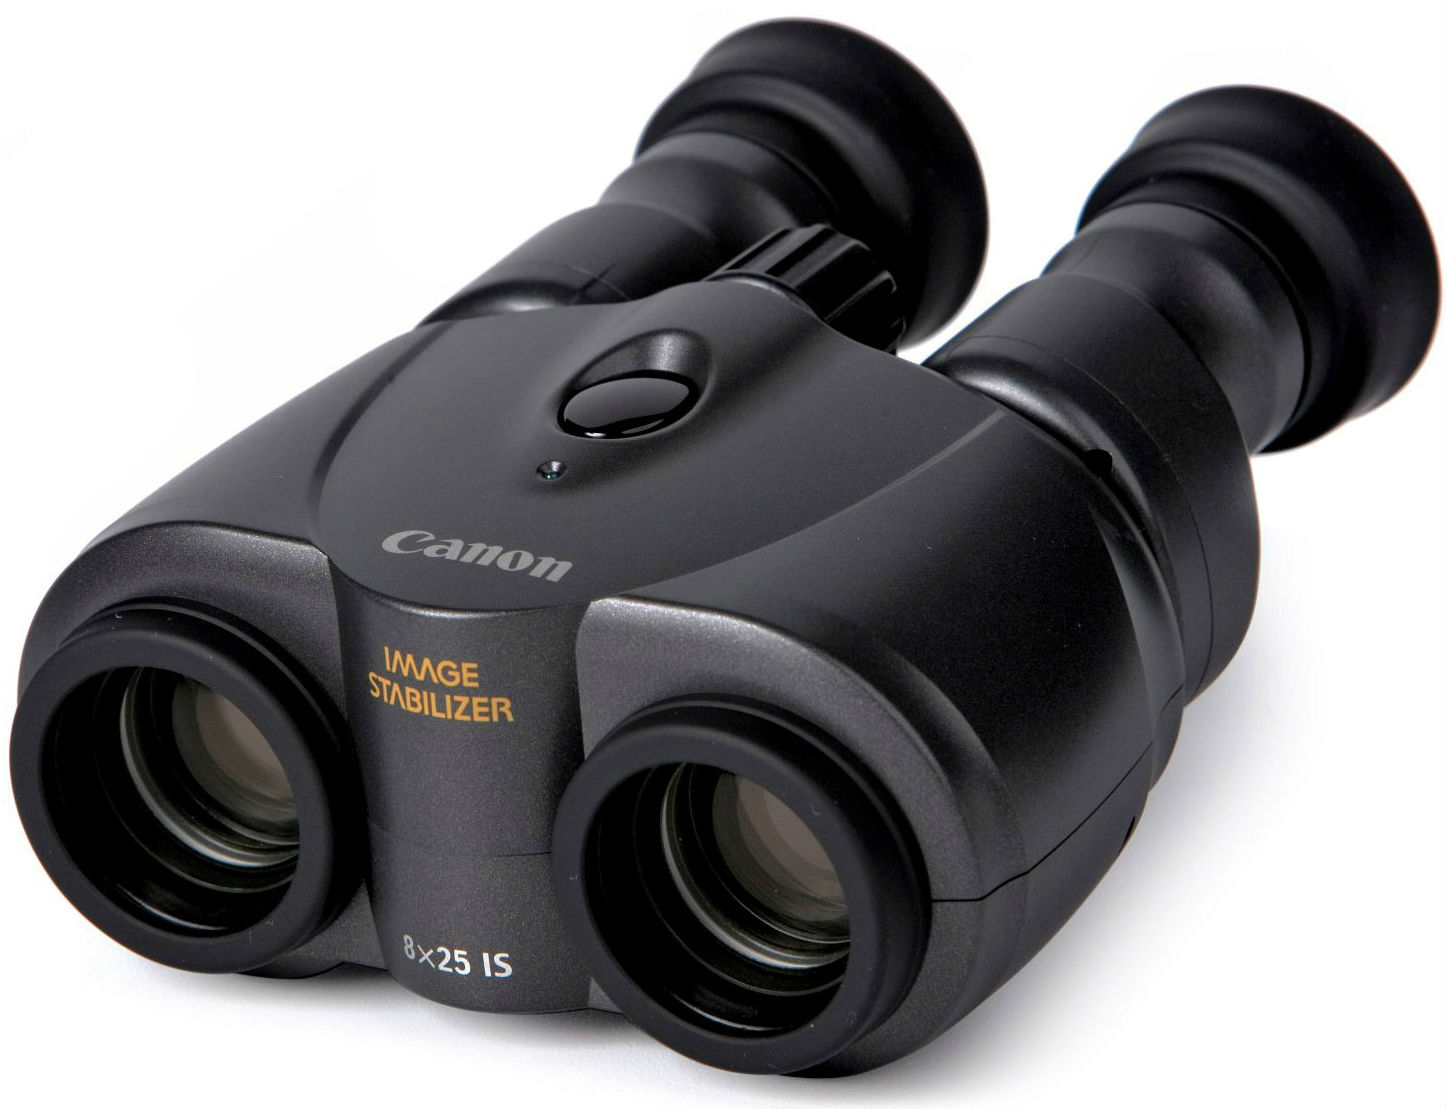 Бинокль Canon 8x25 IS (7562A019) от iCover